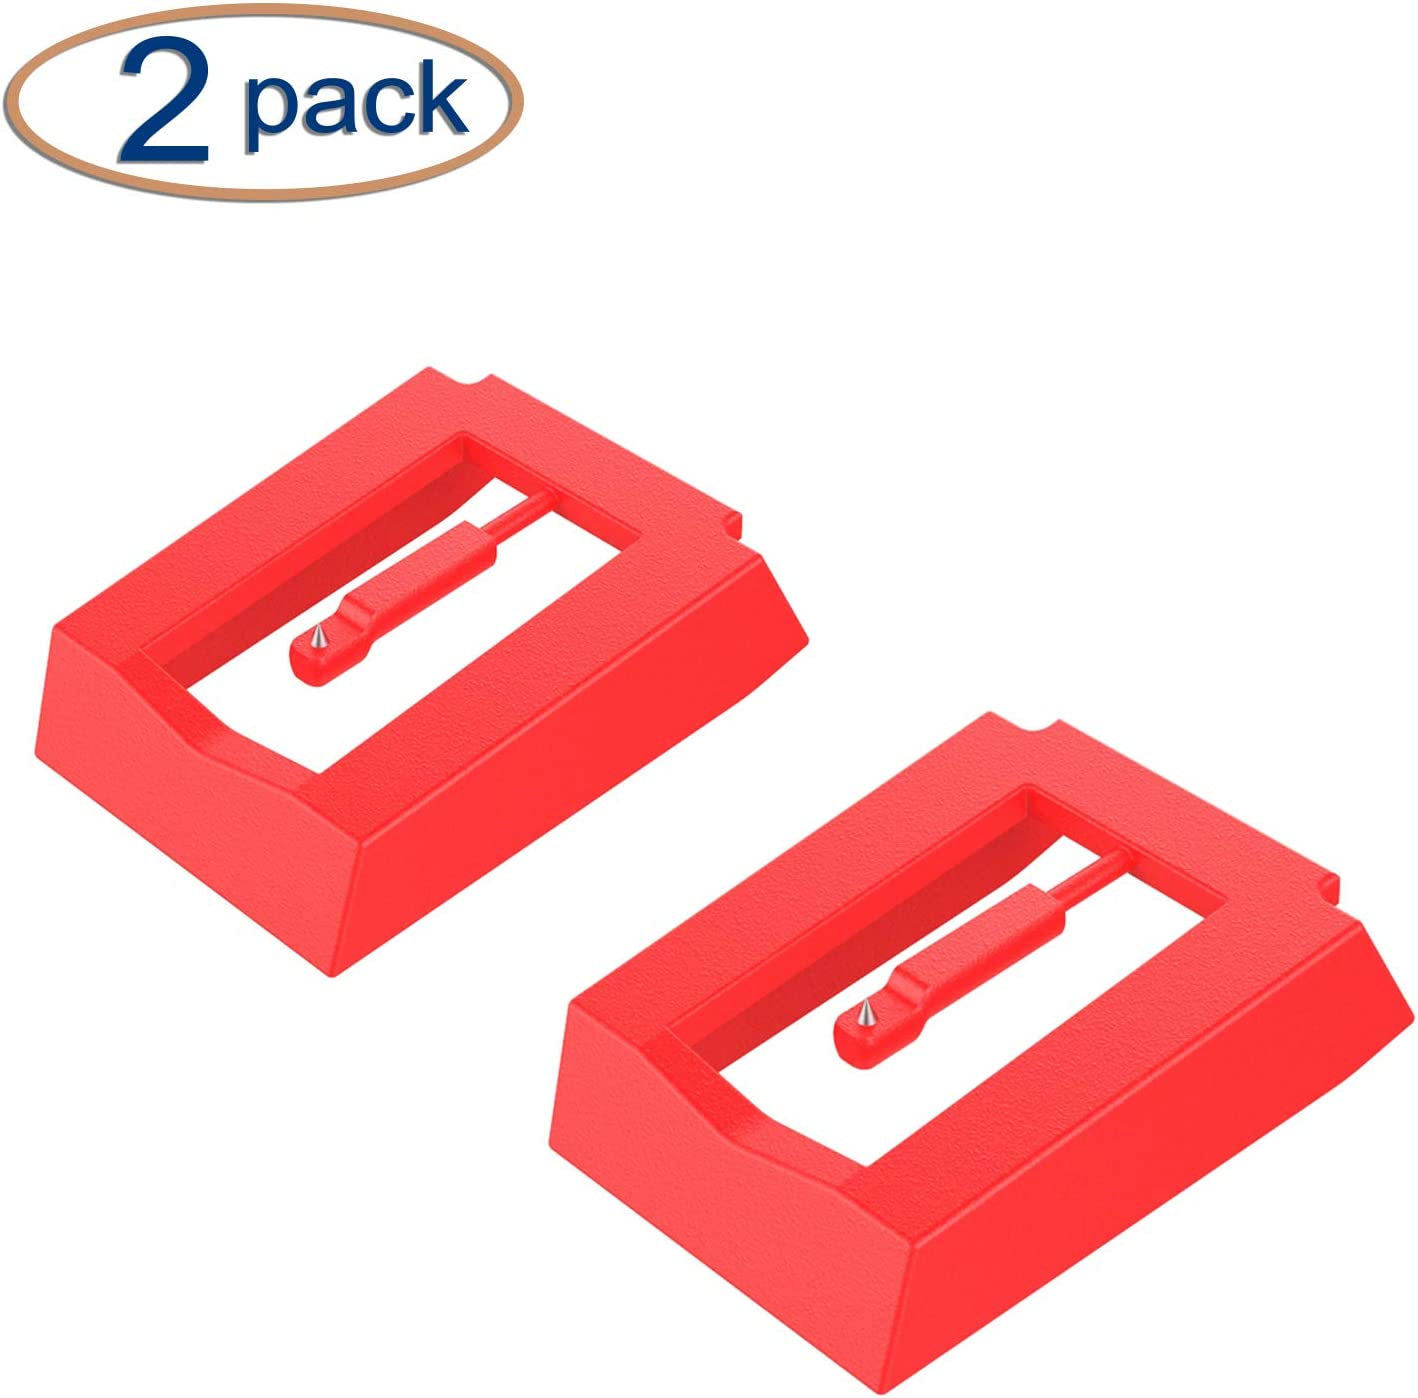 Red Ceramic Stylus Replacement for Turntable LP Rcm Record Player Needle Phonograph Pack of 2